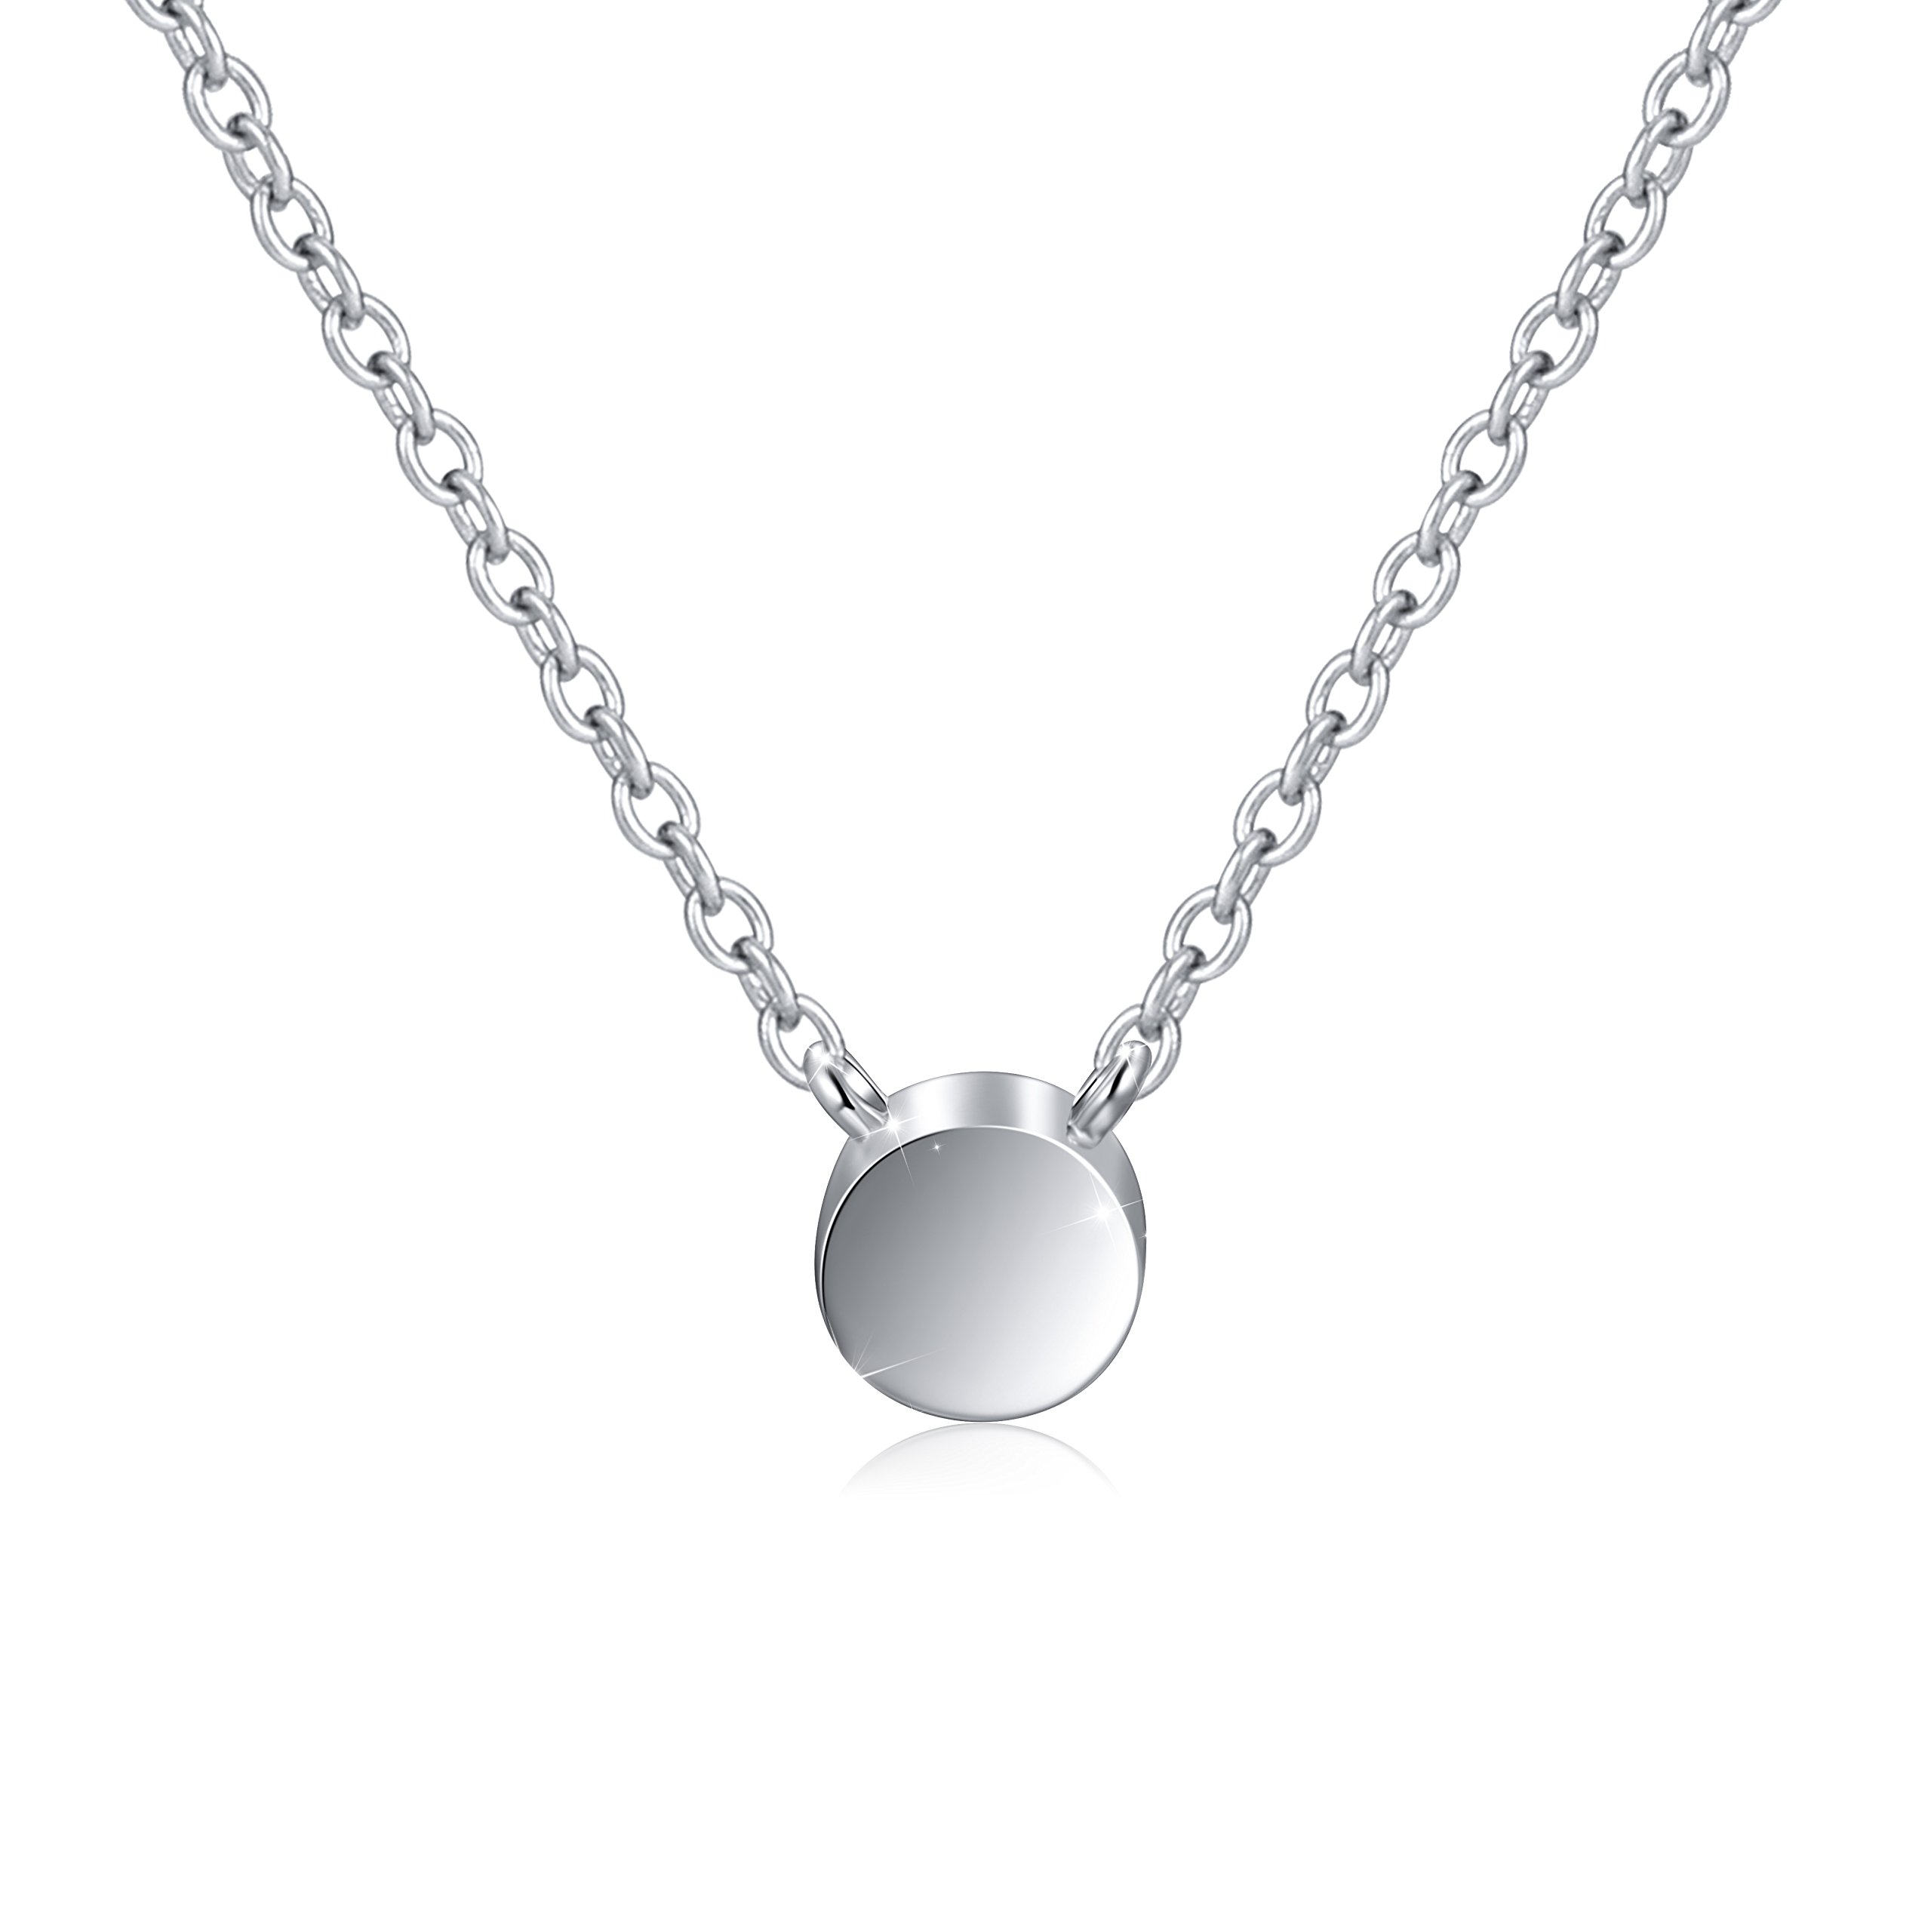 925 Sterling Silver Tiny Dot Necklace Round Circle Choker Chain Necklace for Women, Rolo Chain 16''